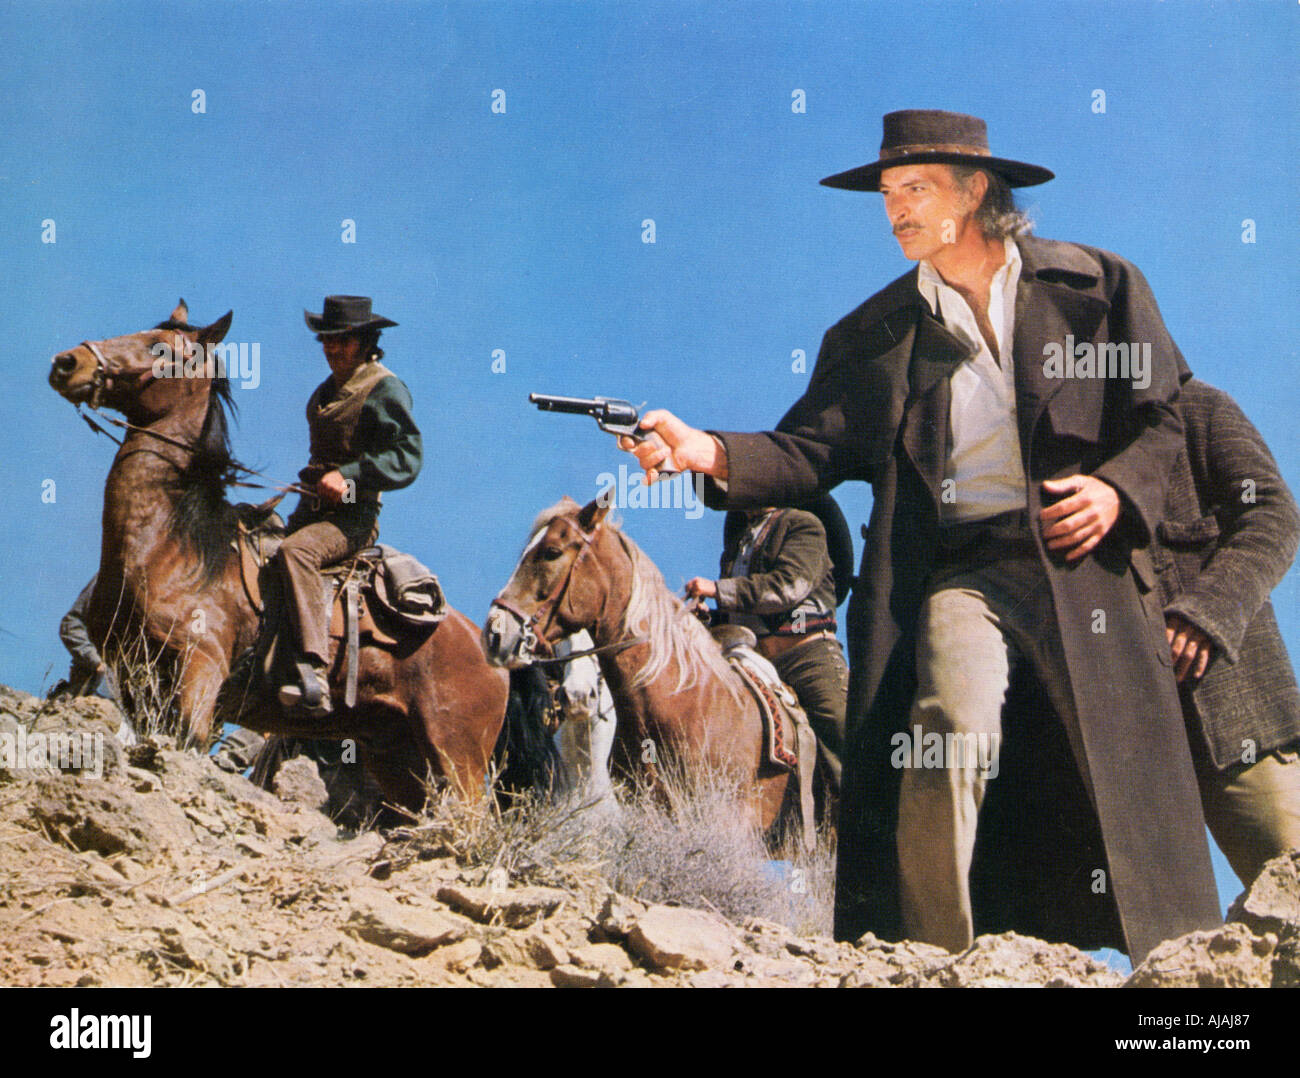 TAKE A HARD RIDE Lee Van Cleef in the 1975 film - Stock Image